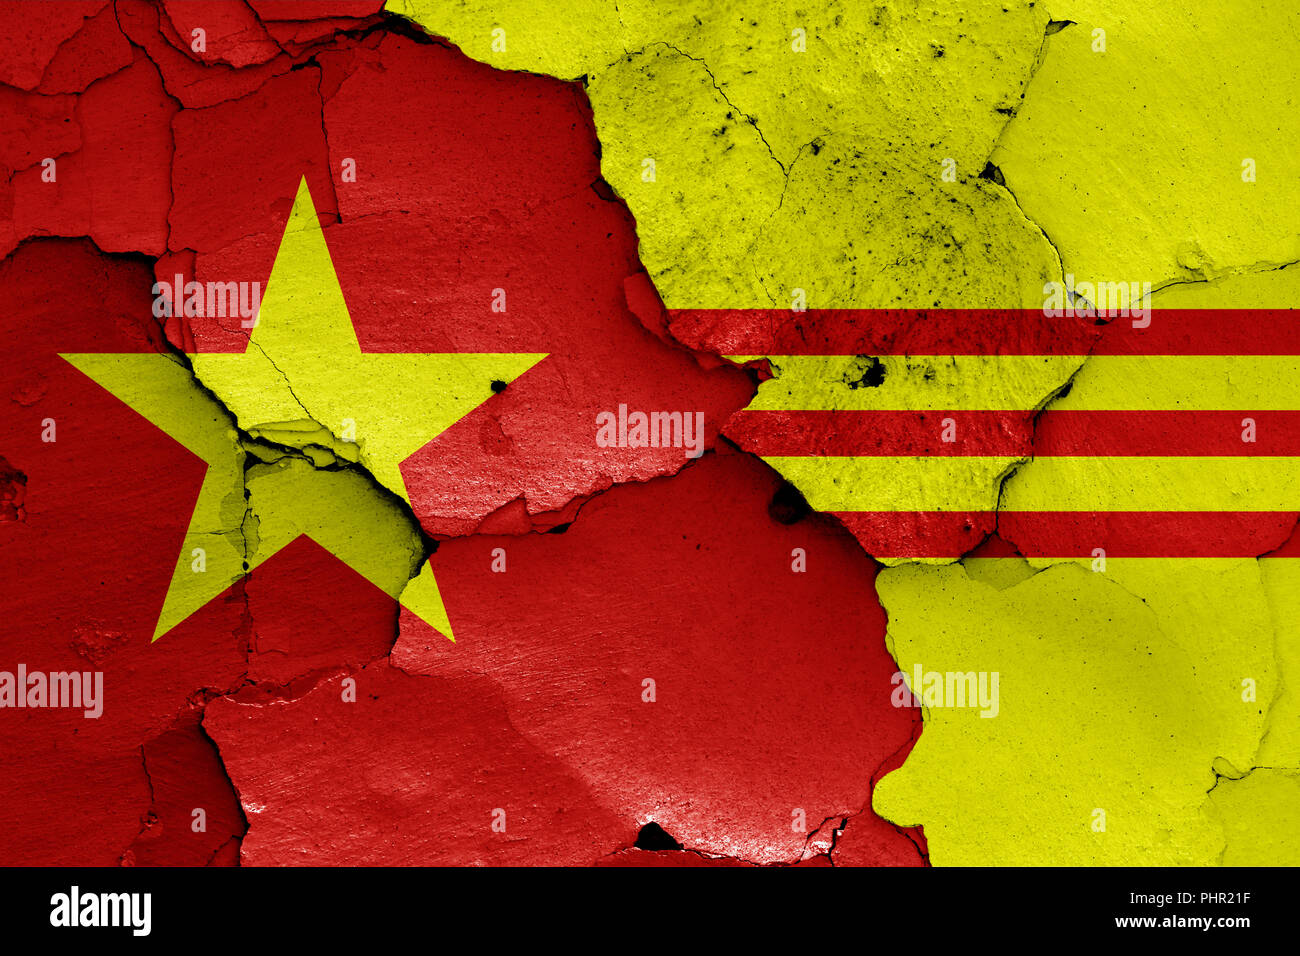 flags of North Vietnam and South Vietnam - Stock Image